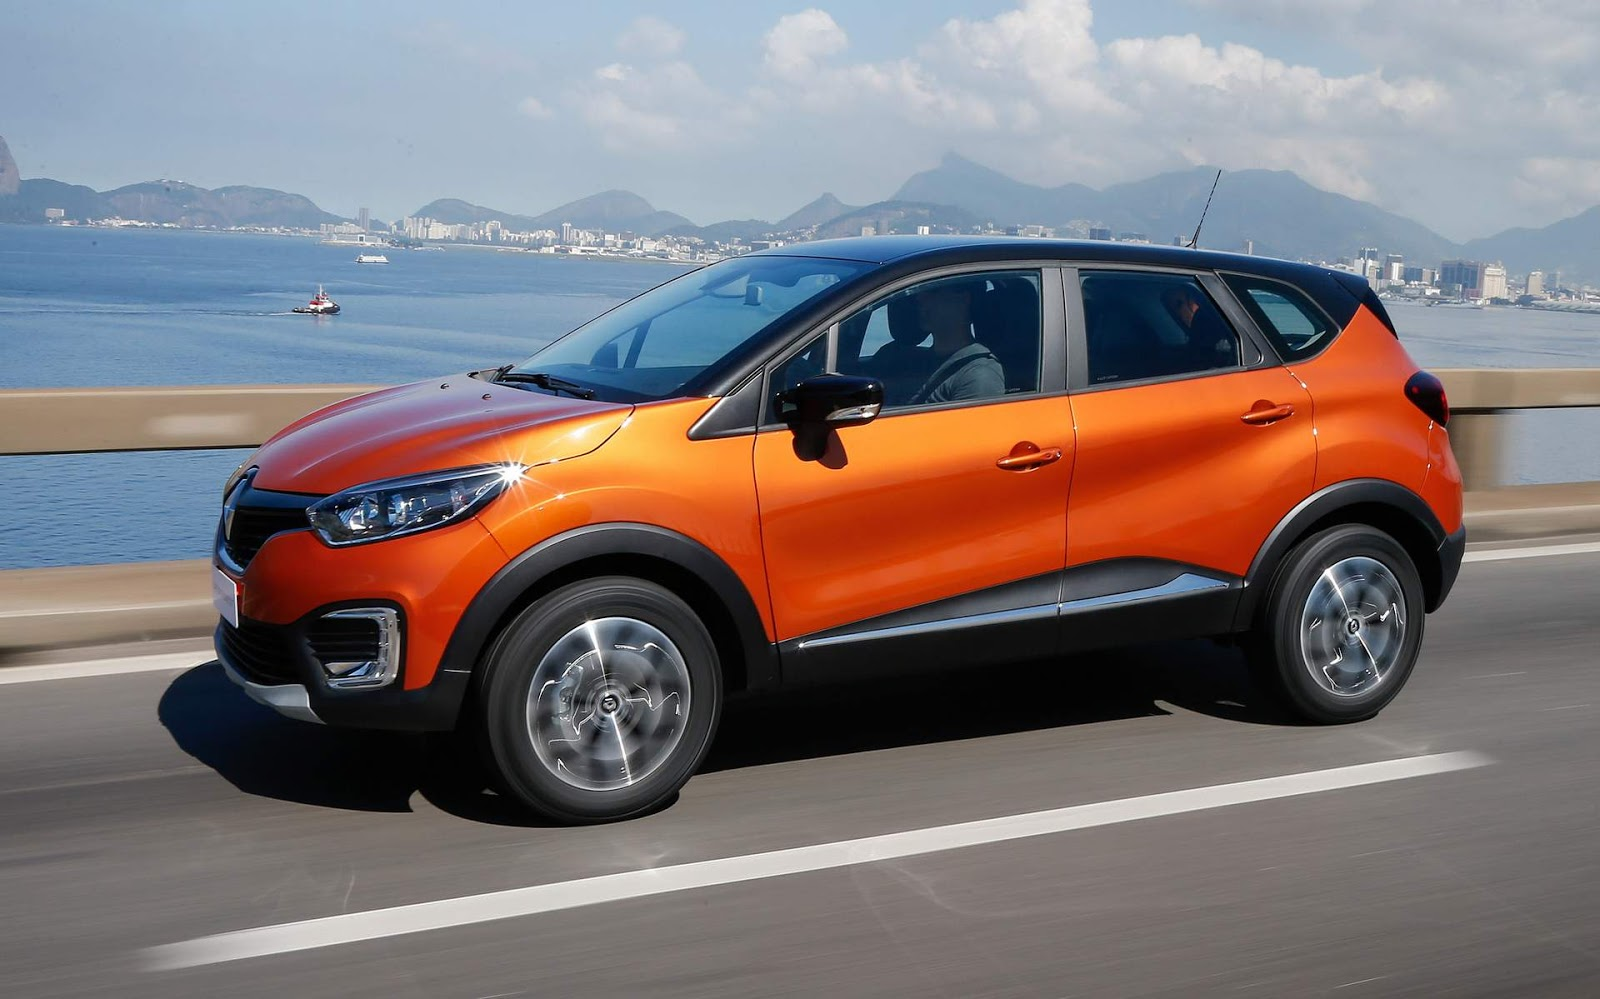 renault captur 2018 1 6 autom tico pre o consumo e fotos car blog br. Black Bedroom Furniture Sets. Home Design Ideas